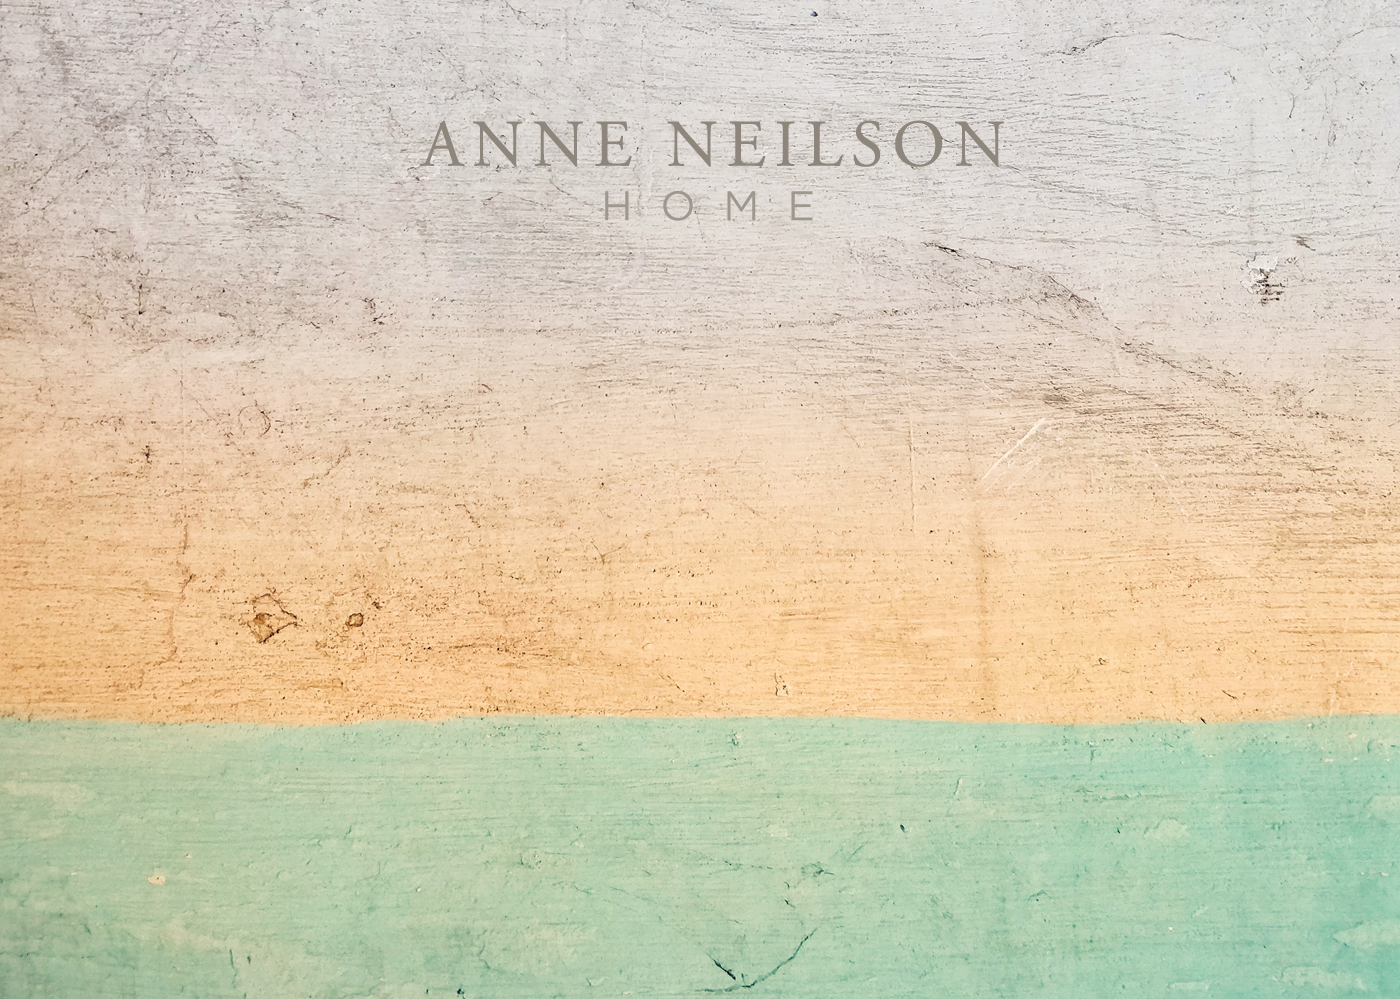 Anne Neilson Home website designed by Bellaworks Web Design